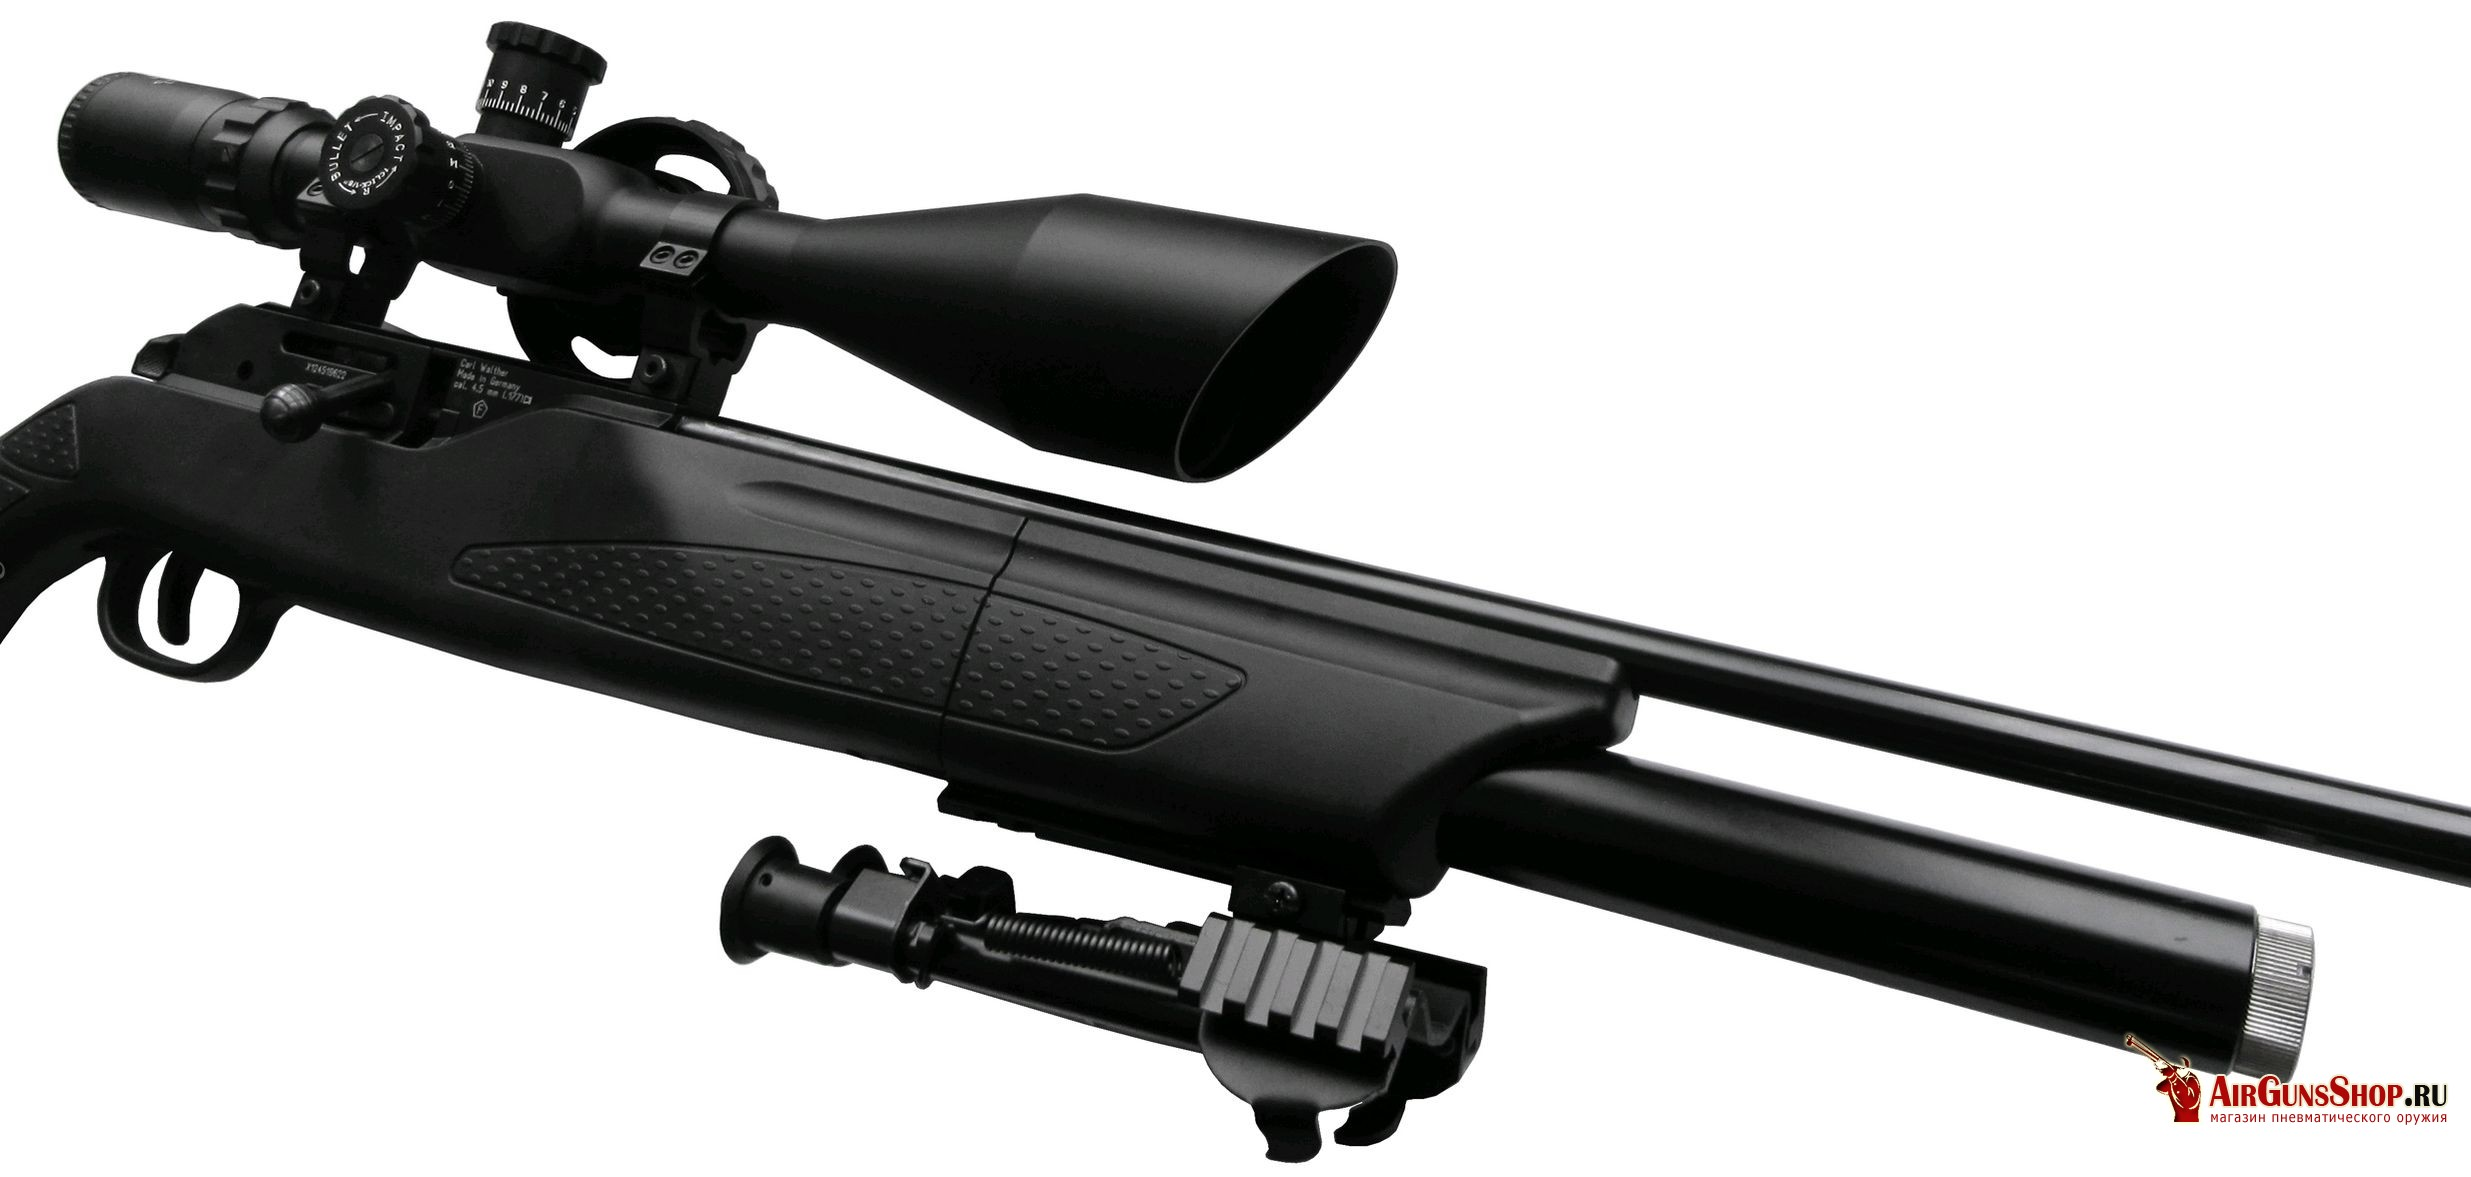 Винтовка Umarex Walther 1250 Dominator FT PCP